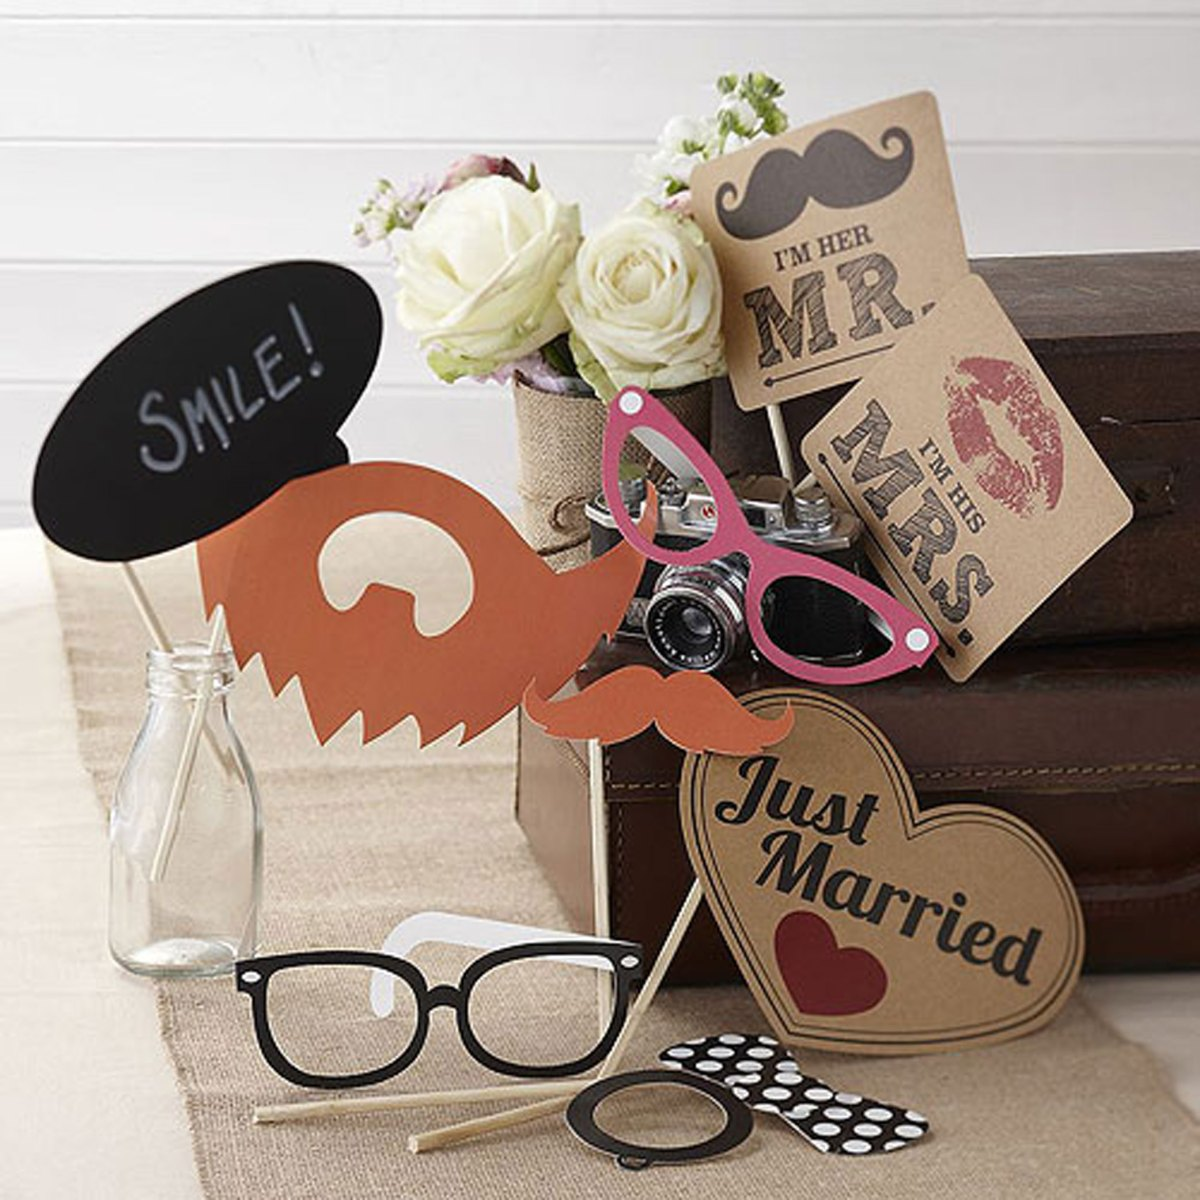 VIntage Photo Booth Props Kit with moustache and glasses and mr and mrs sign Just married sign